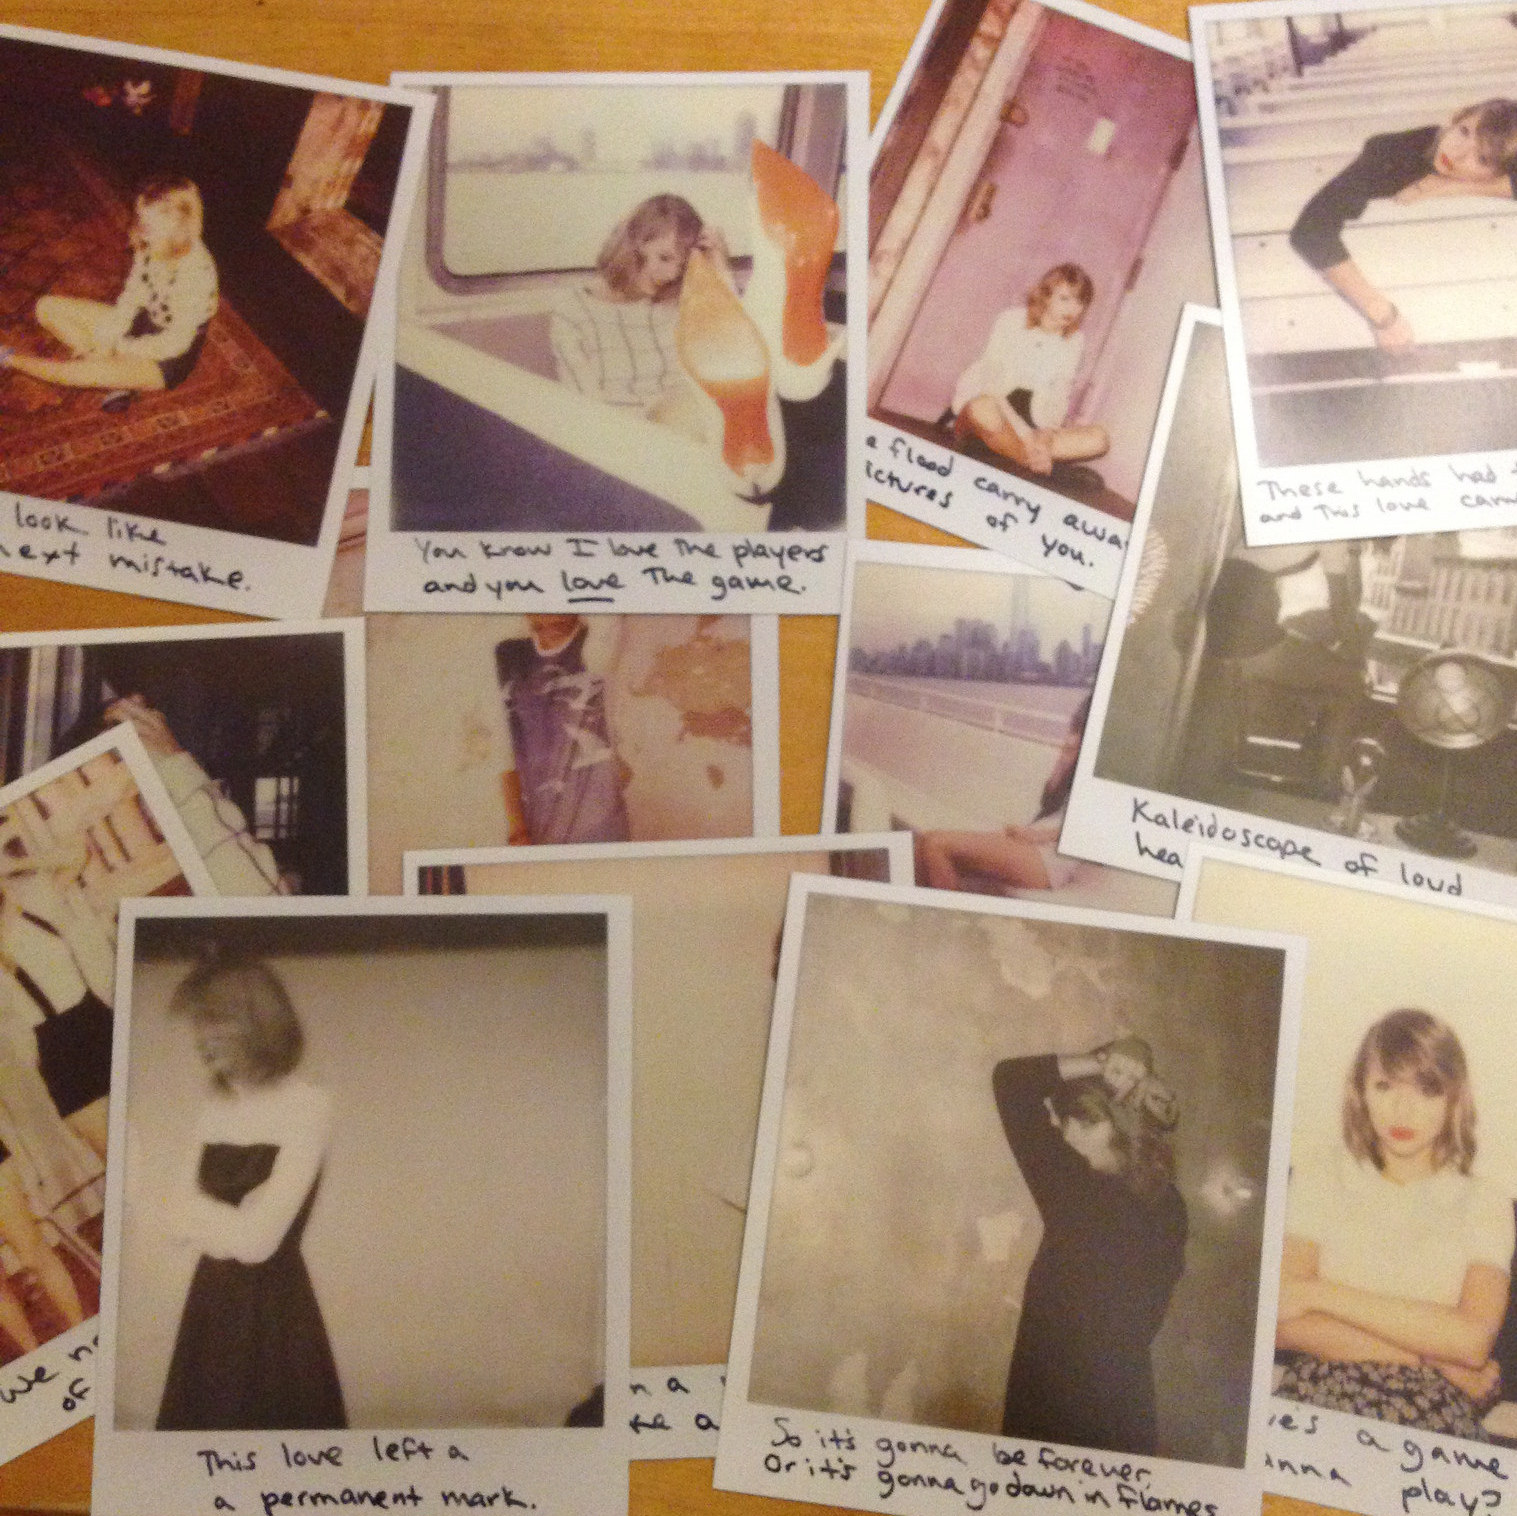 Photolove - Taylor Swift